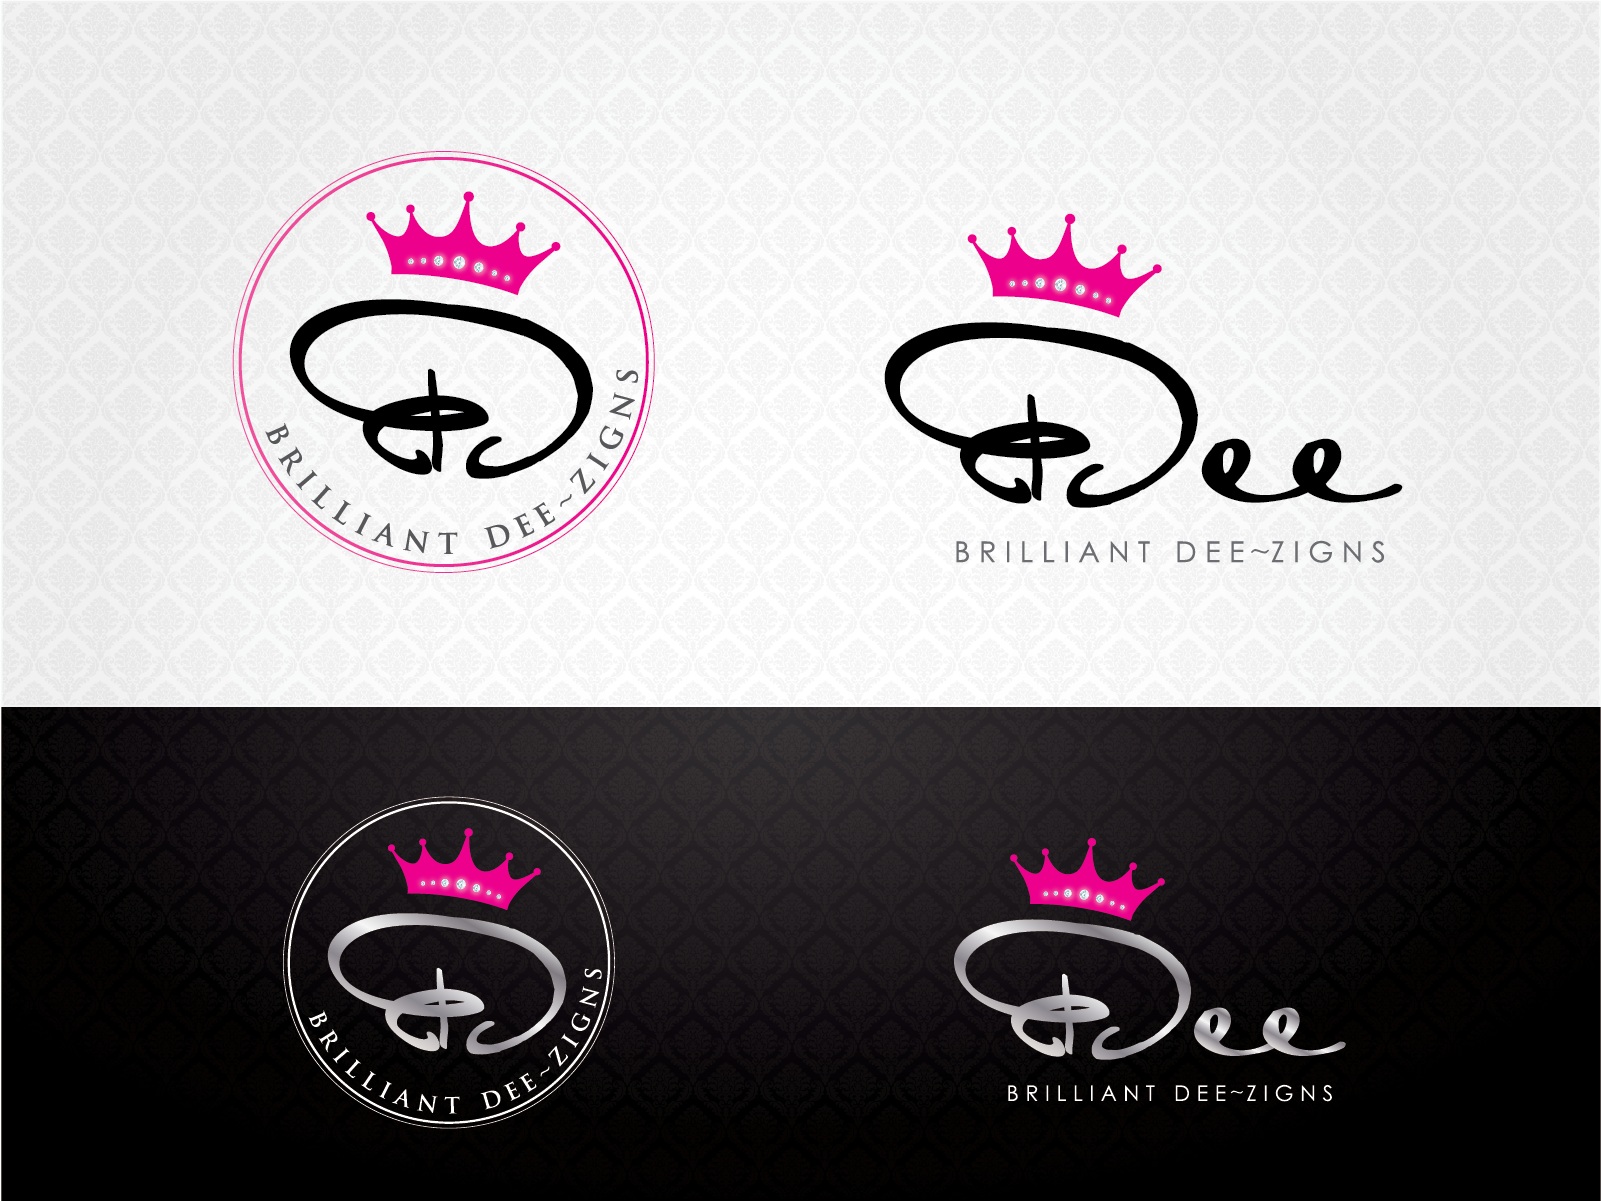 Be the shining designer for logo of Brilliant Dee~zigns!